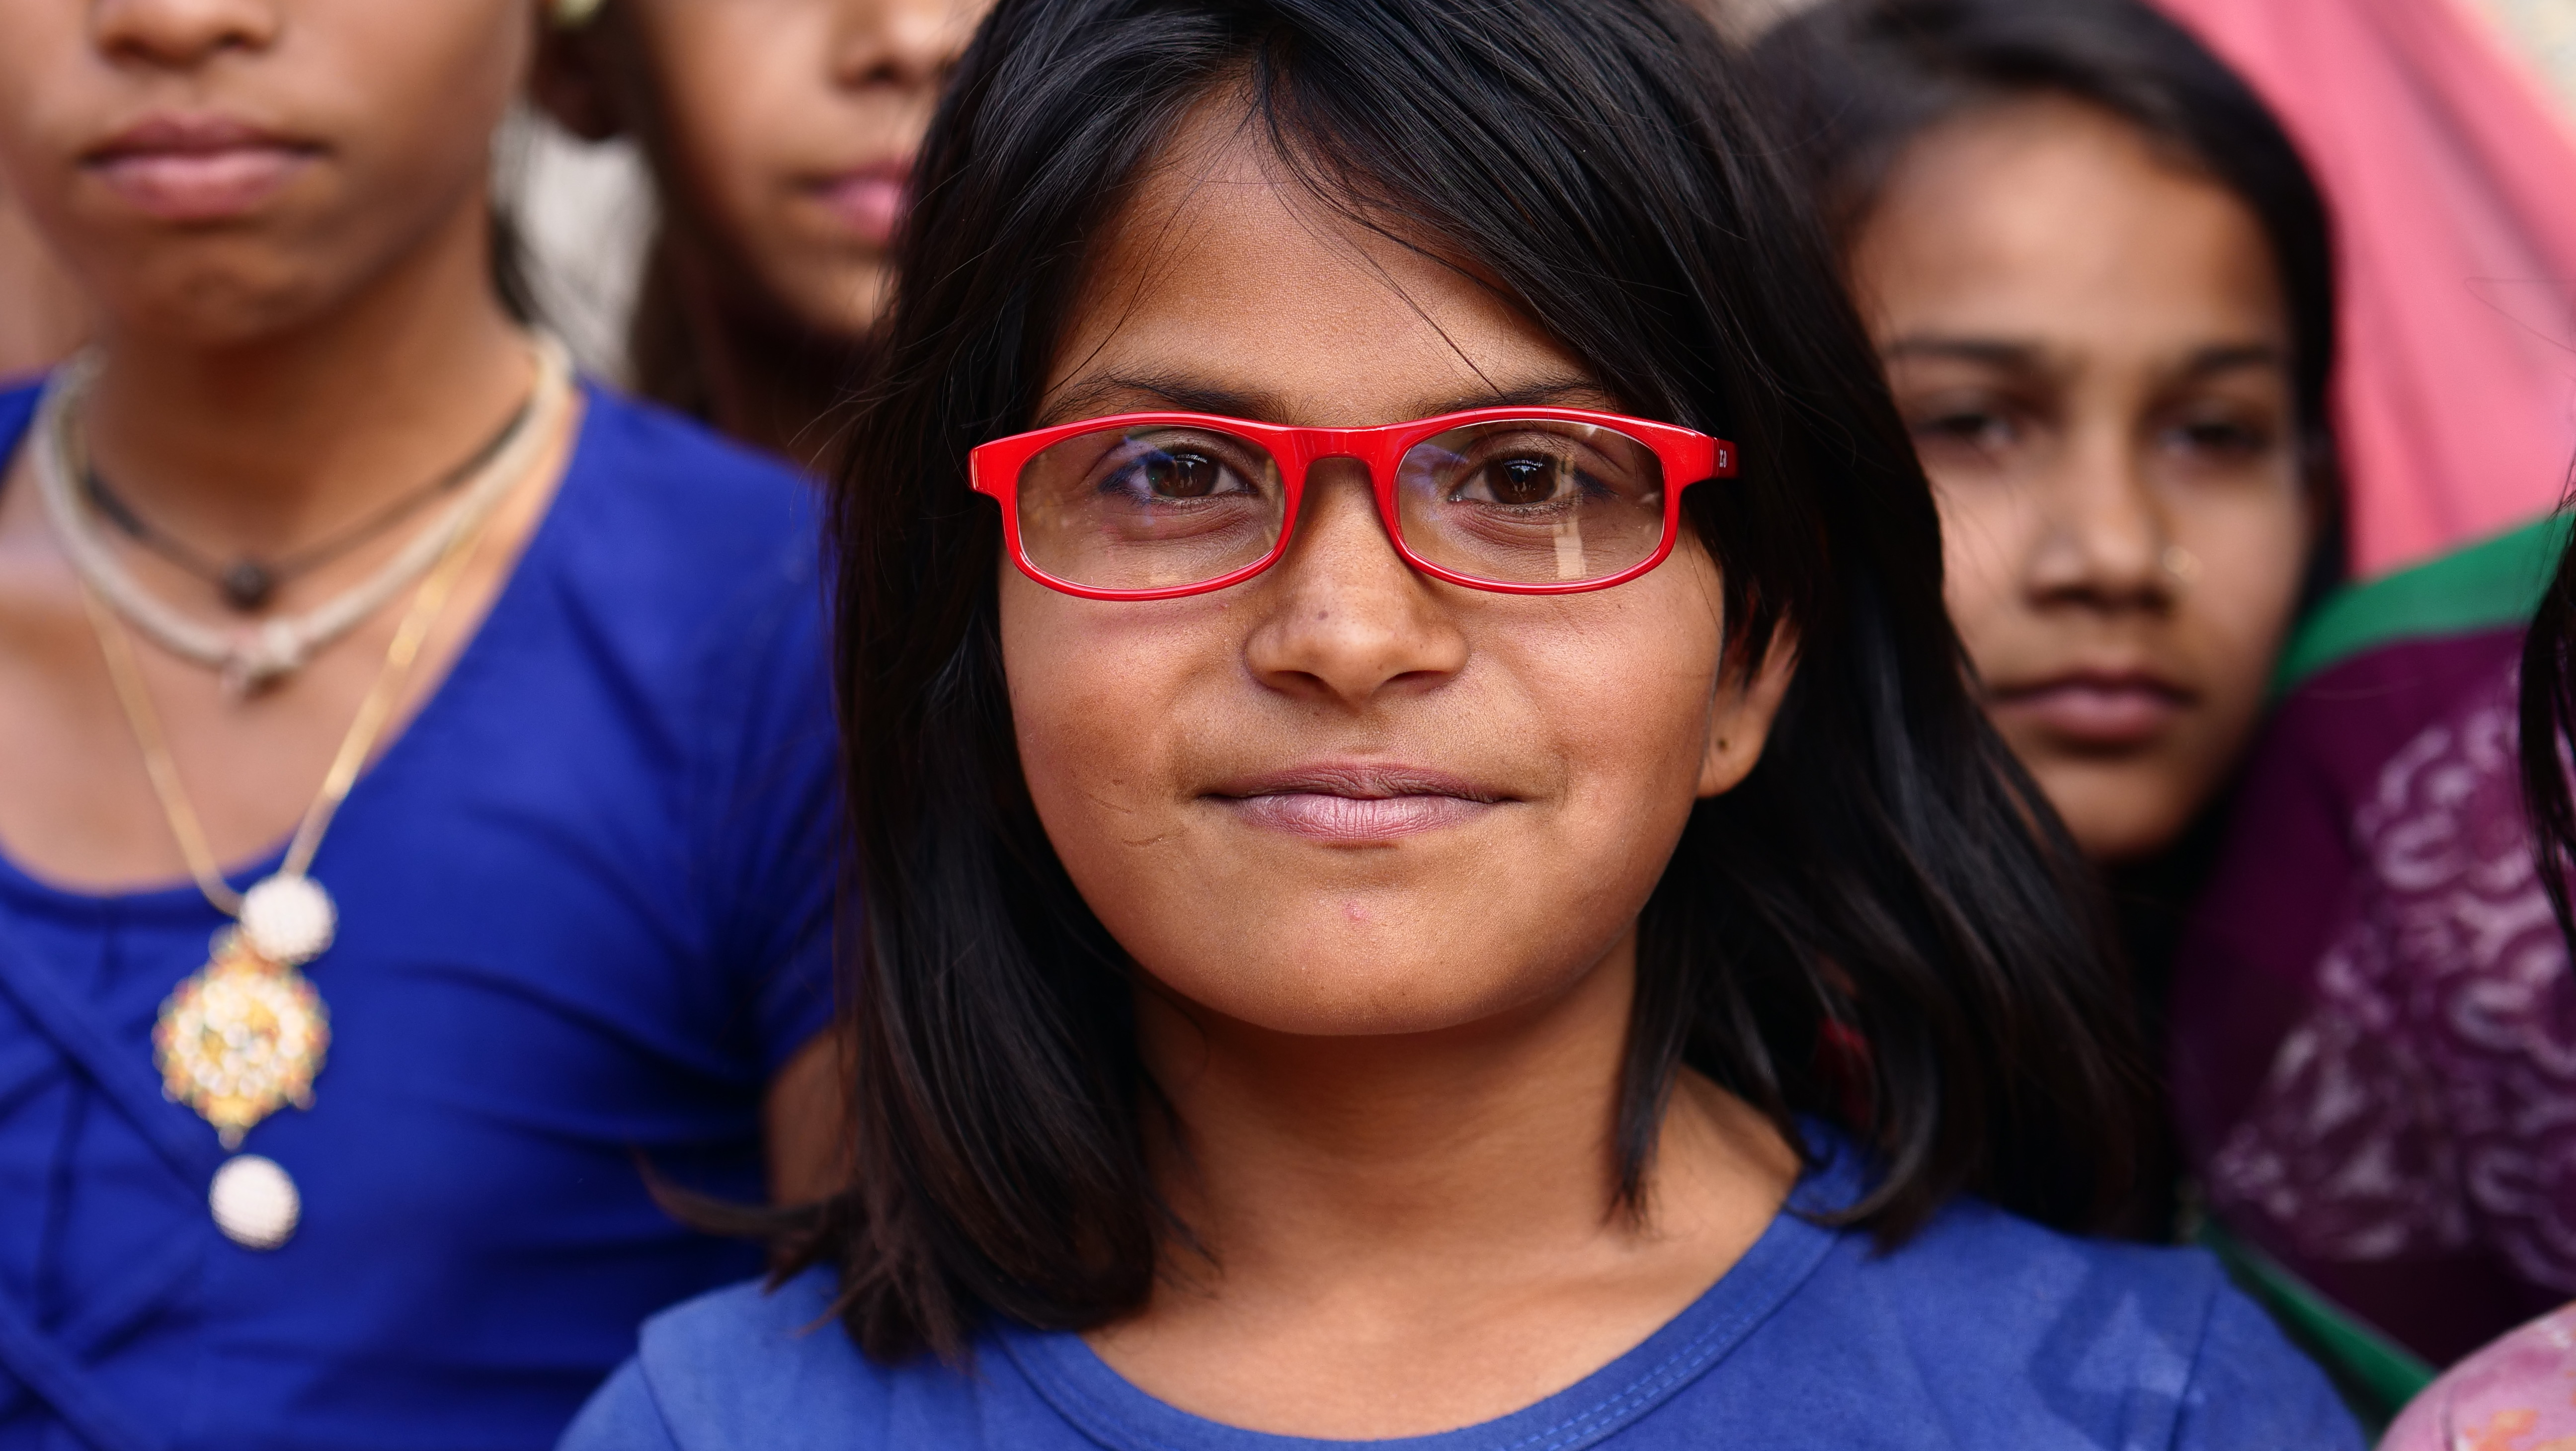 Over 500 million people suffer from uncorrected poor vision in India